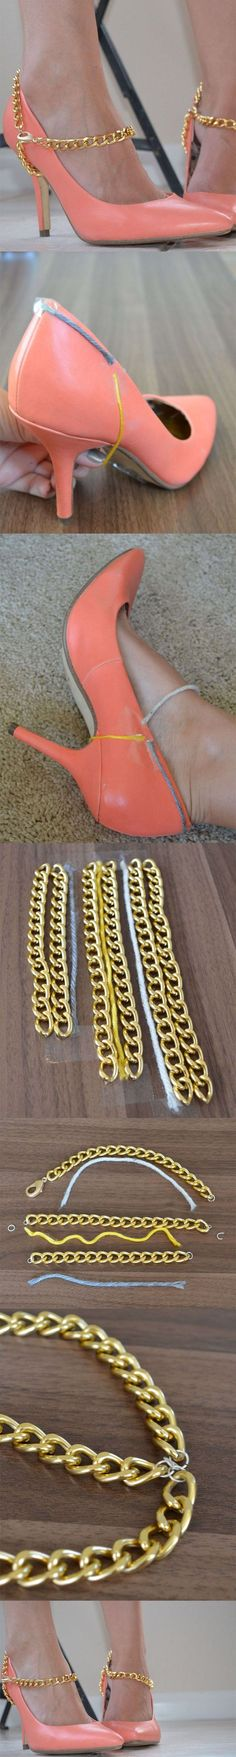 DIY: Jewelry Chains Cool Ideas: when I cud where heels I loved an ankle strap.. this is way more cool   :)